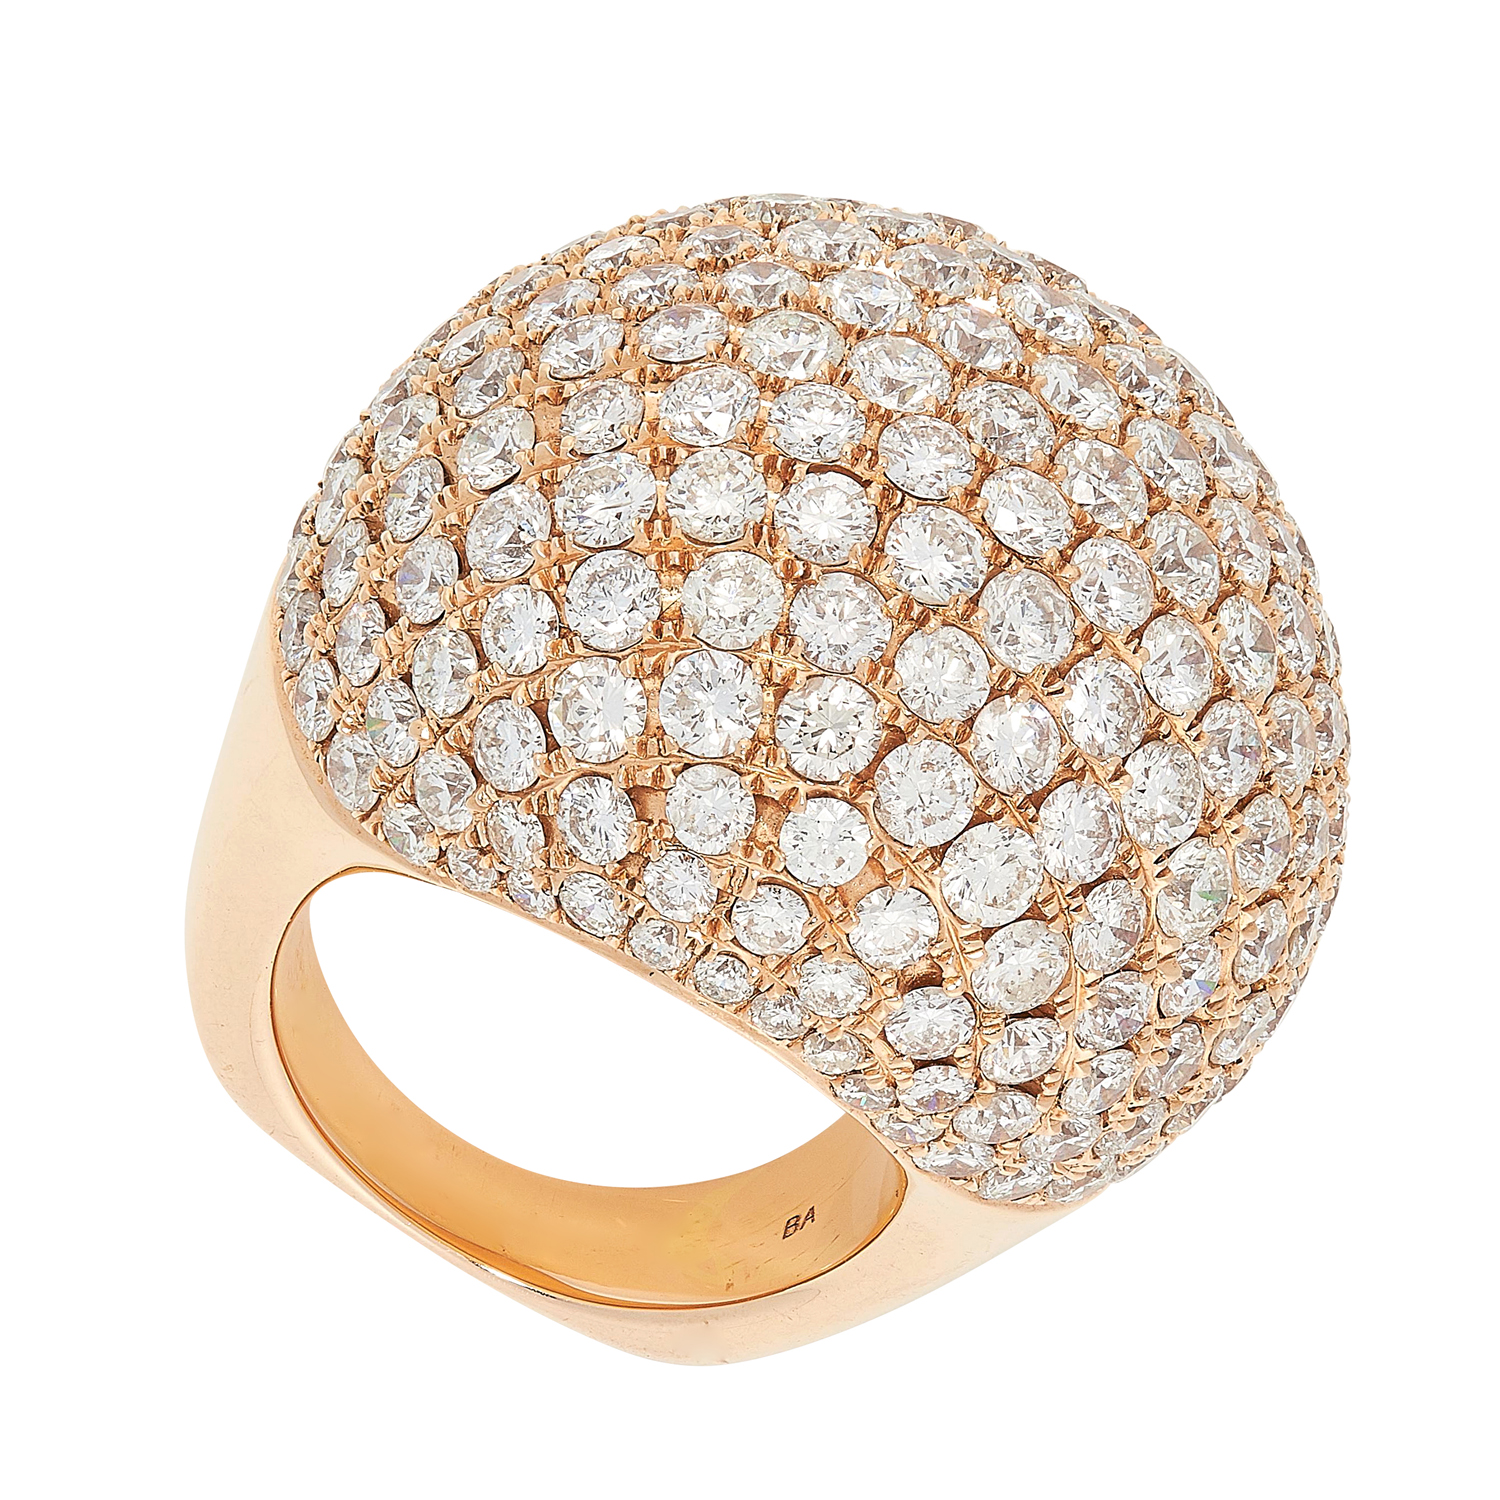 A DIAMOND COCKTAIL RING of bombe design, allover pave set with round cut diamonds totalling 14.0- - Image 2 of 2